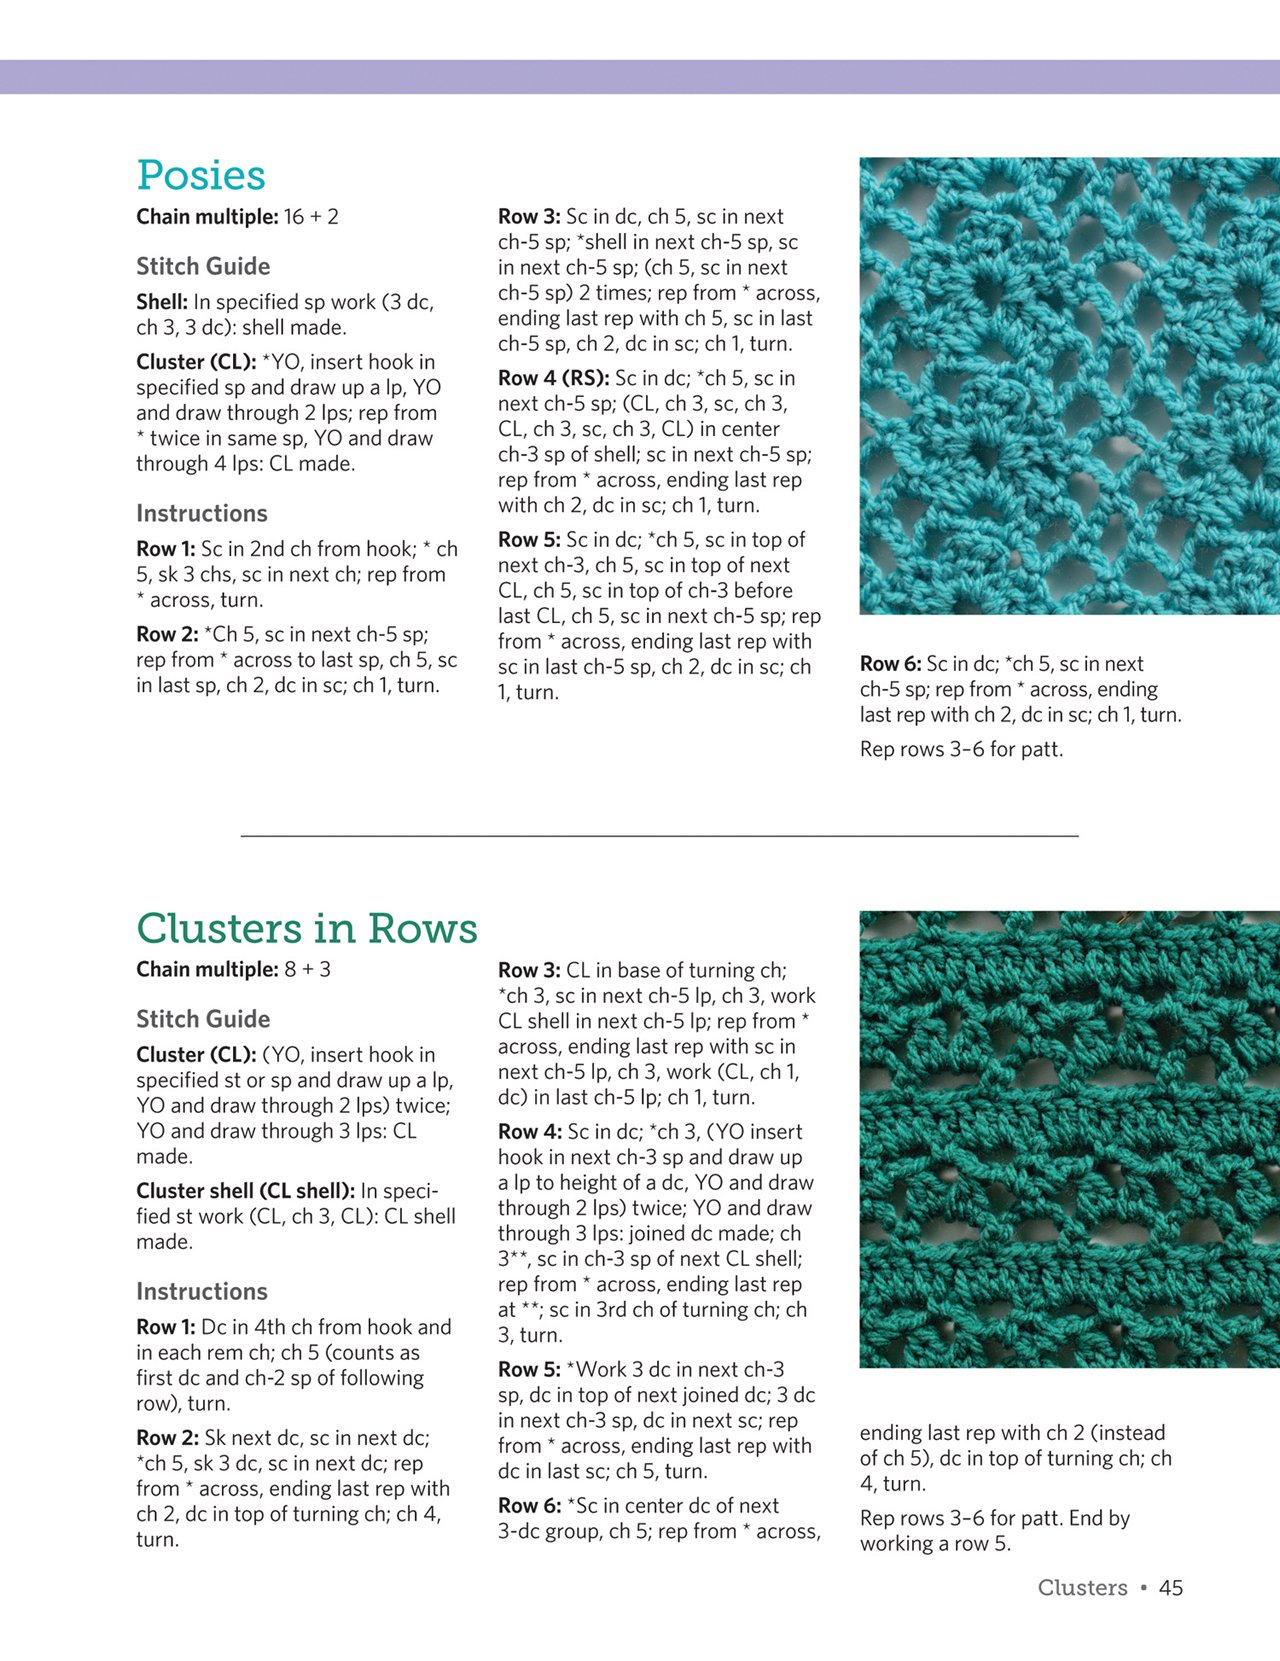 The Big Book Of Crochet Stitches Fabulous Fans Pretty Picots Diagrams For Stitch Patterns Pinterest Clever Clusters And A Whole Lot More Rita Weiss Jean Leinhauser 9781604684506